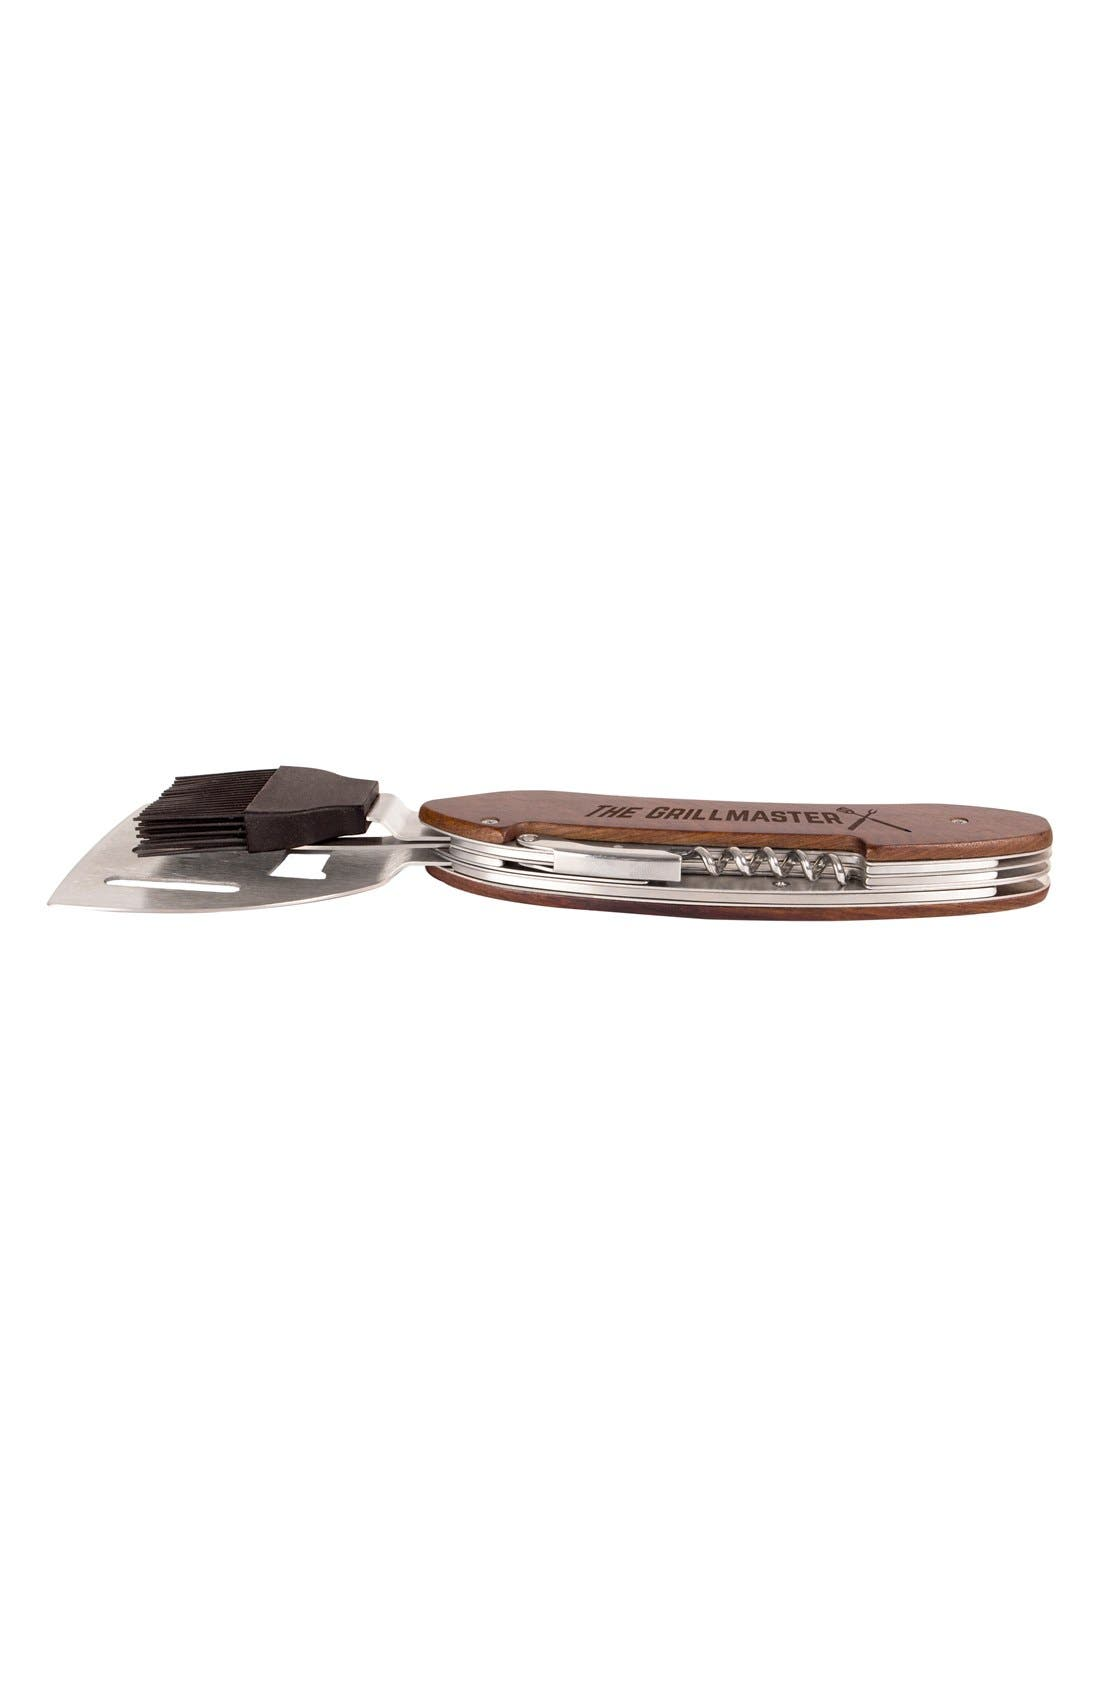 'Grillmaster' BBQ Multi Tool,                             Alternate thumbnail 3, color,                             BROWN